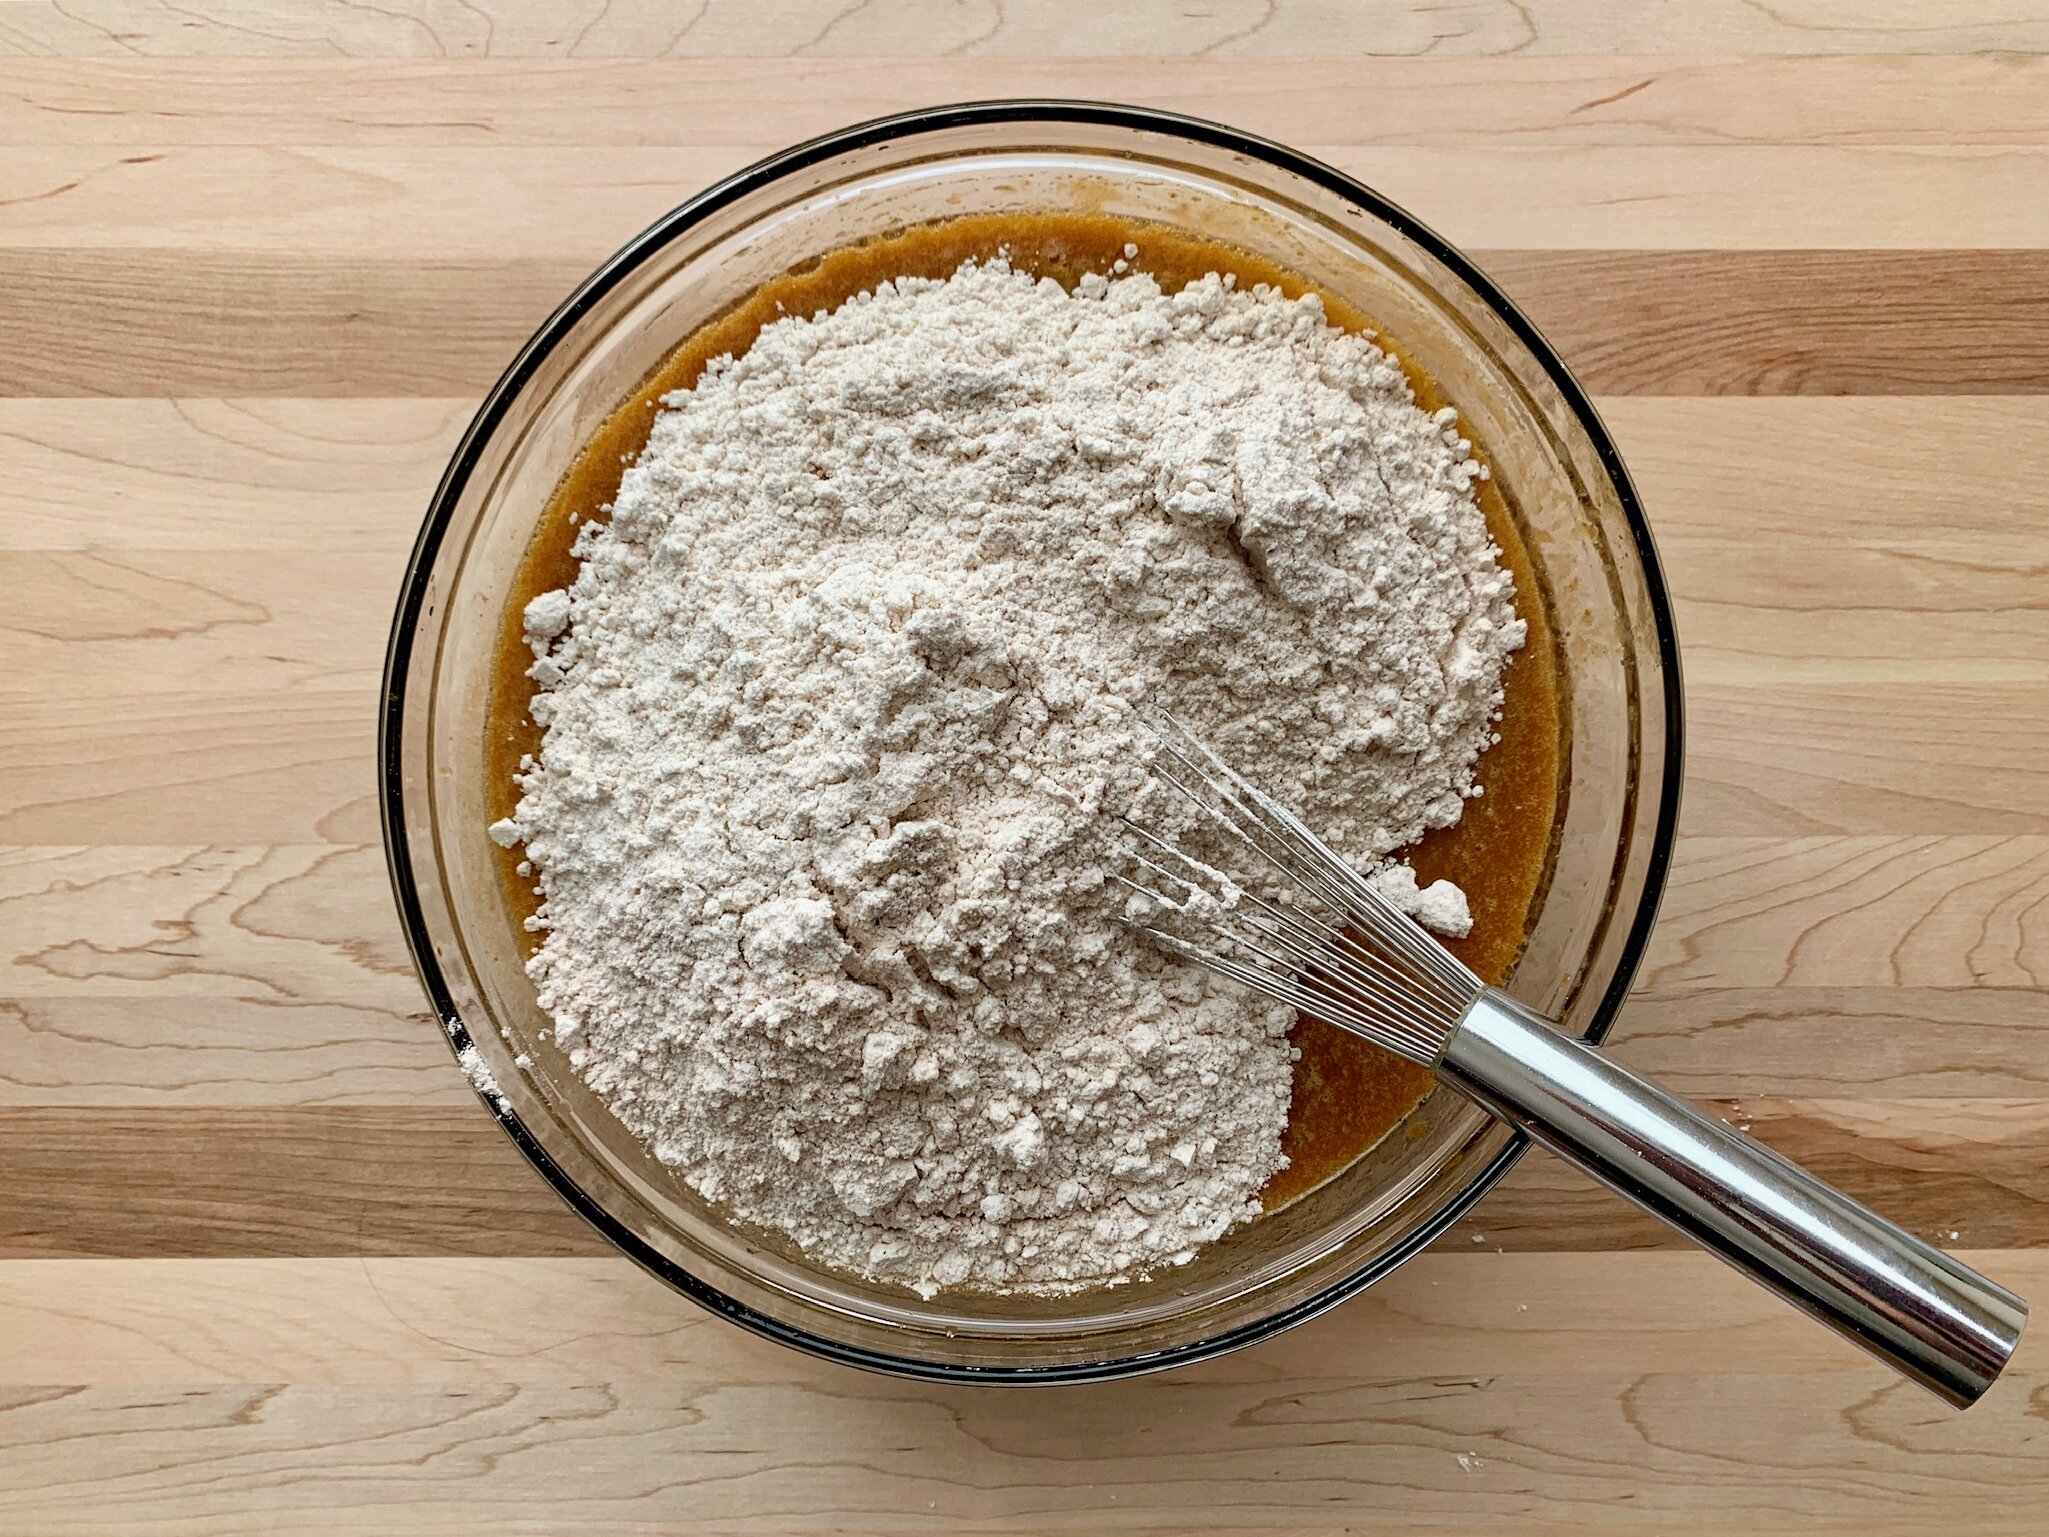 5. Add dry ingredients to pumpkin mixture. Mix until just combined. Do not overmix. -